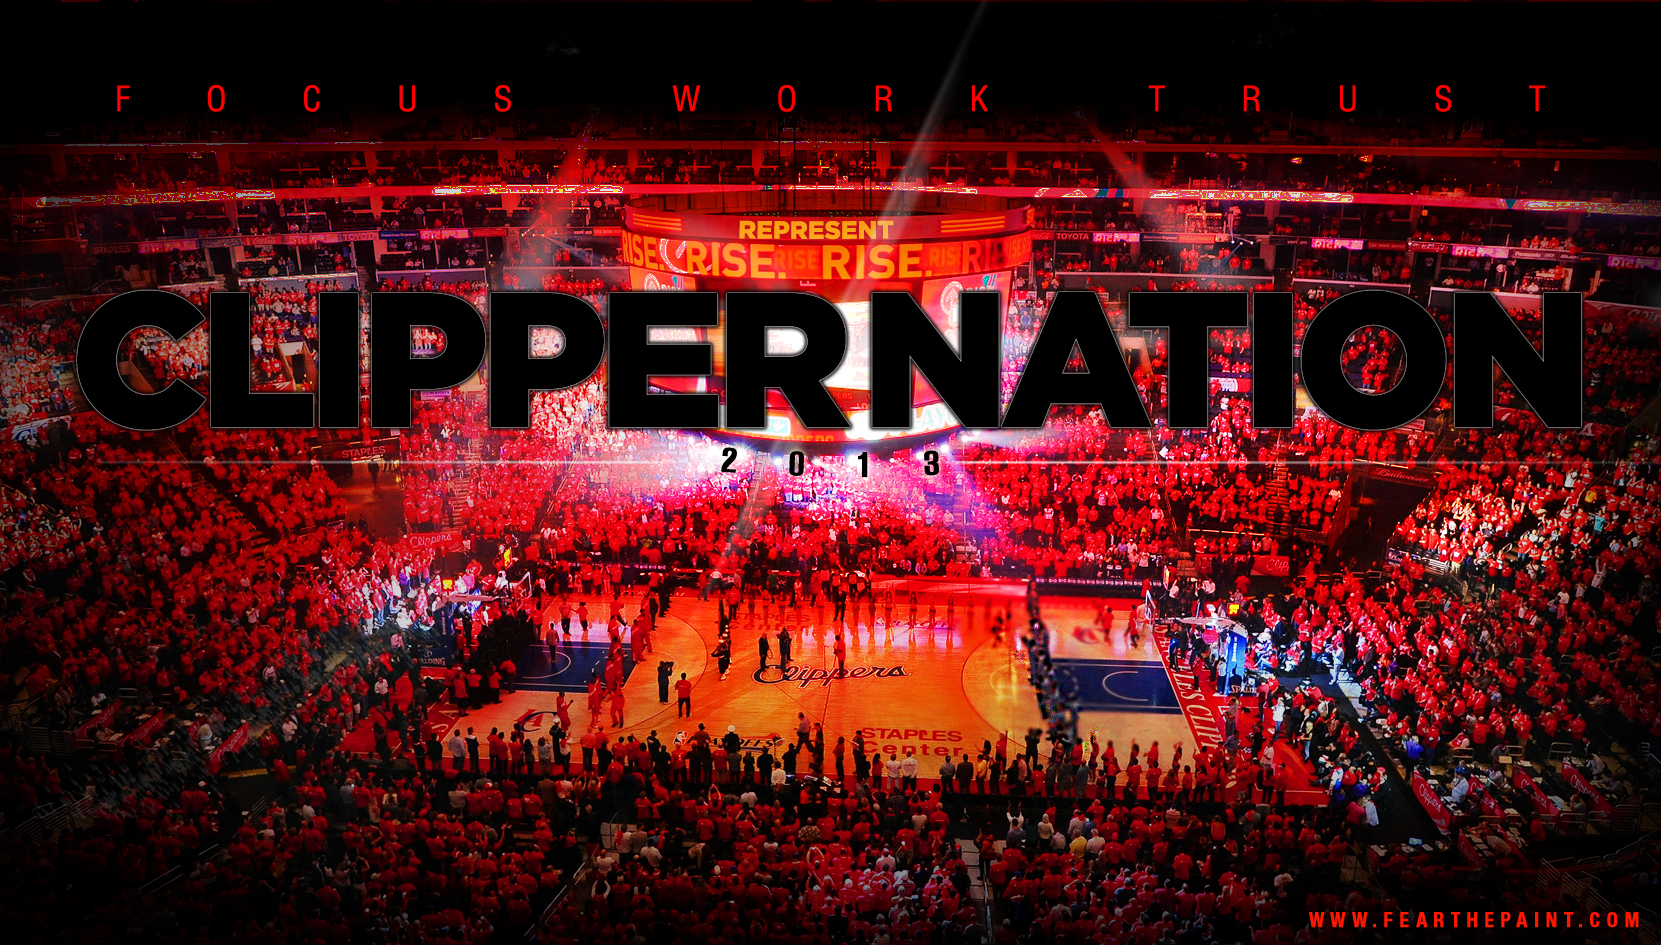 Clippers Wallpaper Ipad